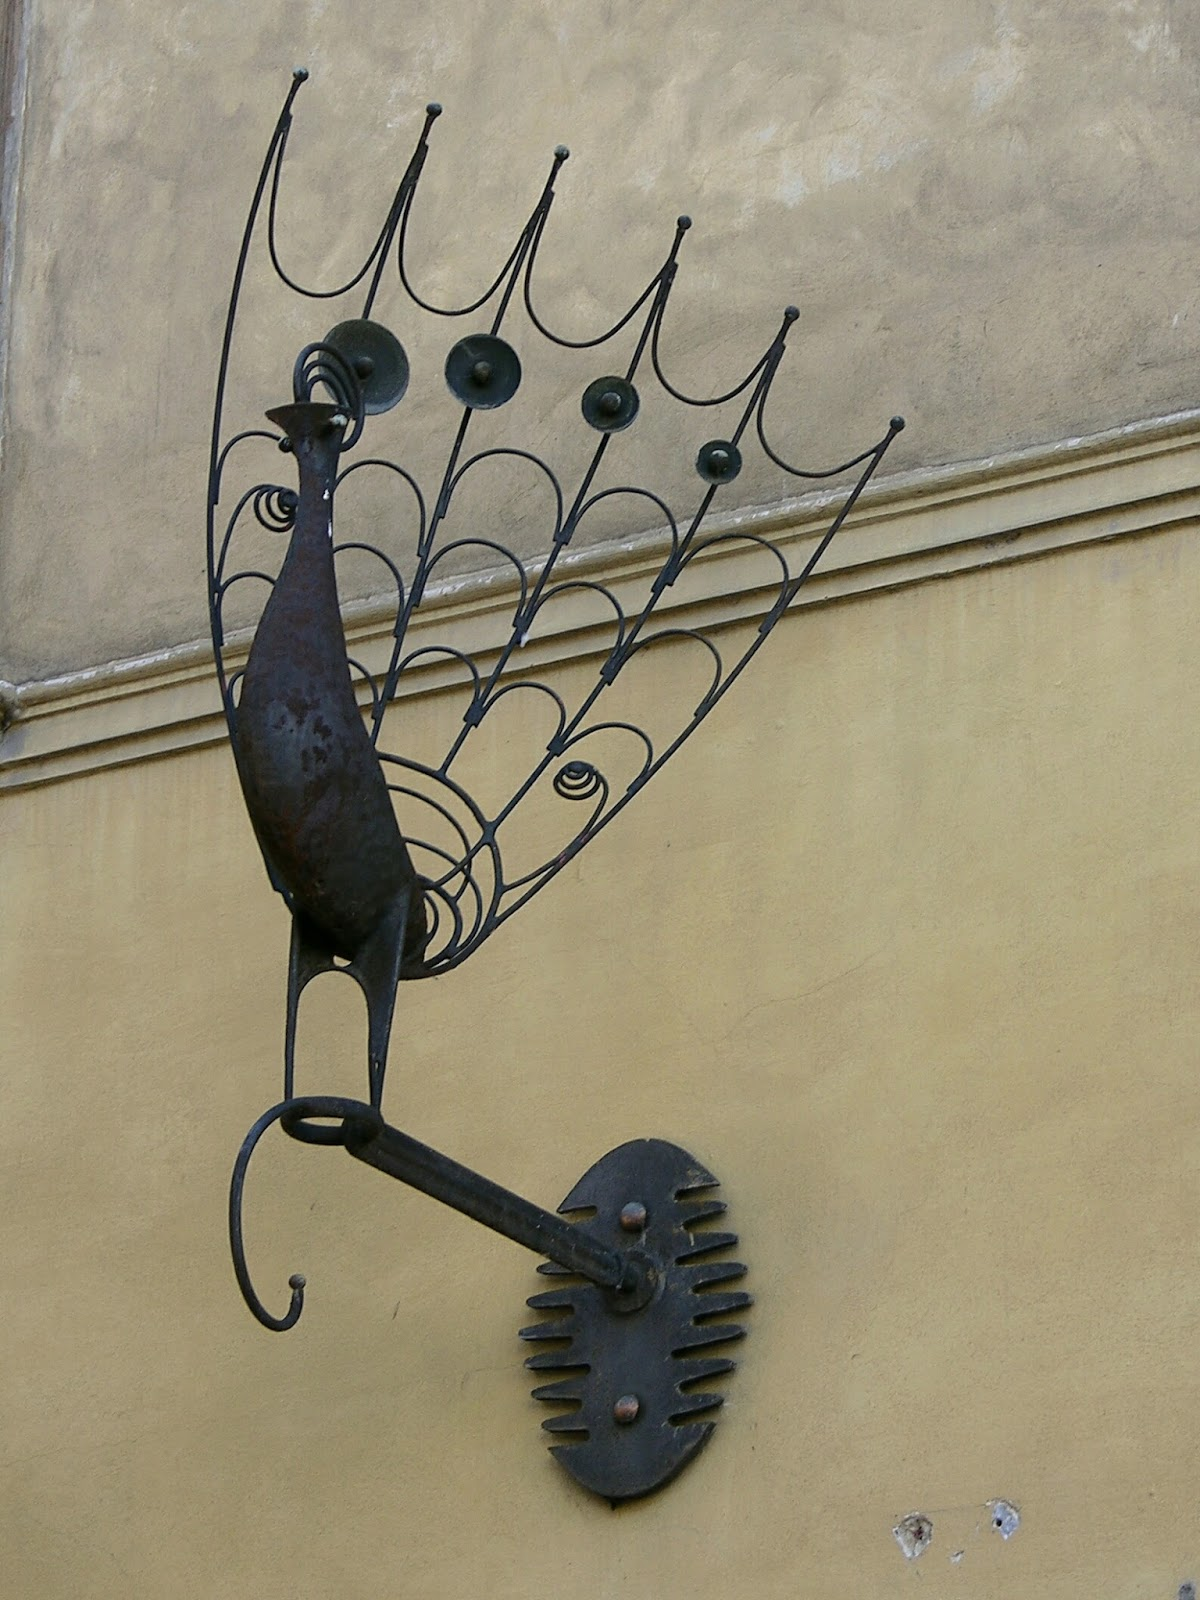 This Unusual Wrought Iron Sign Portrays The Display Of A Pea With Spread Tail